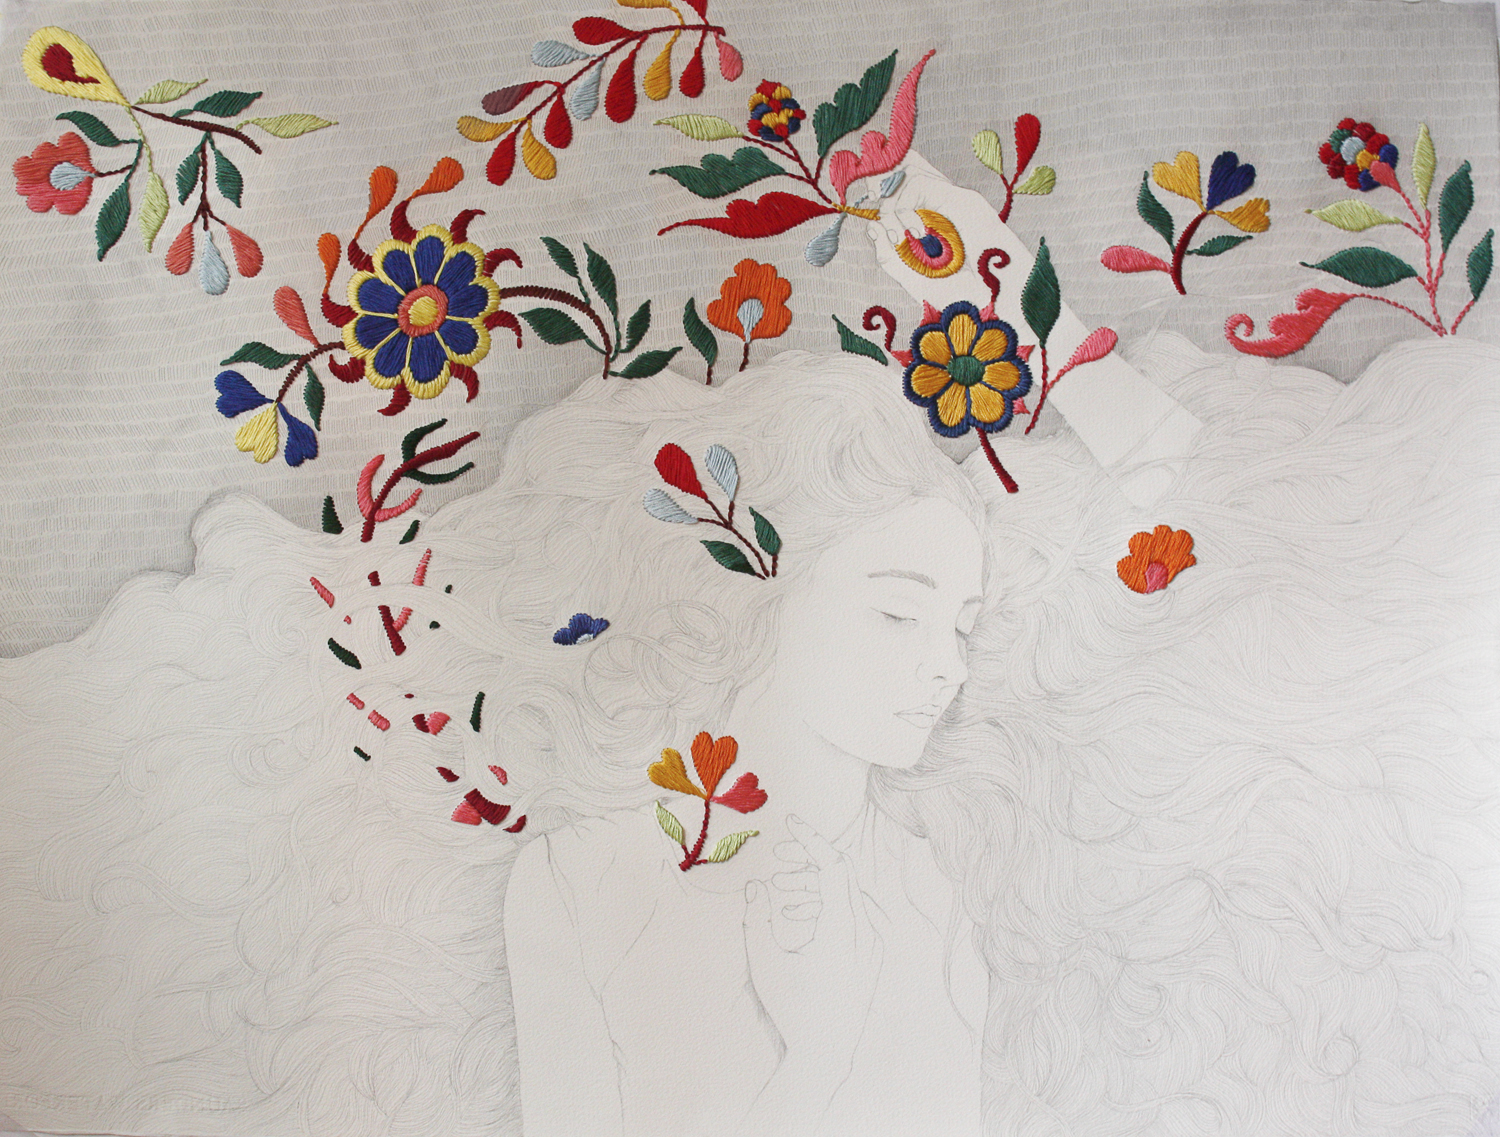 Izziyana SUHAIMI  The Loom in our Bones 8  2013 Embroidery and pencil on paper 57 x 75 cm